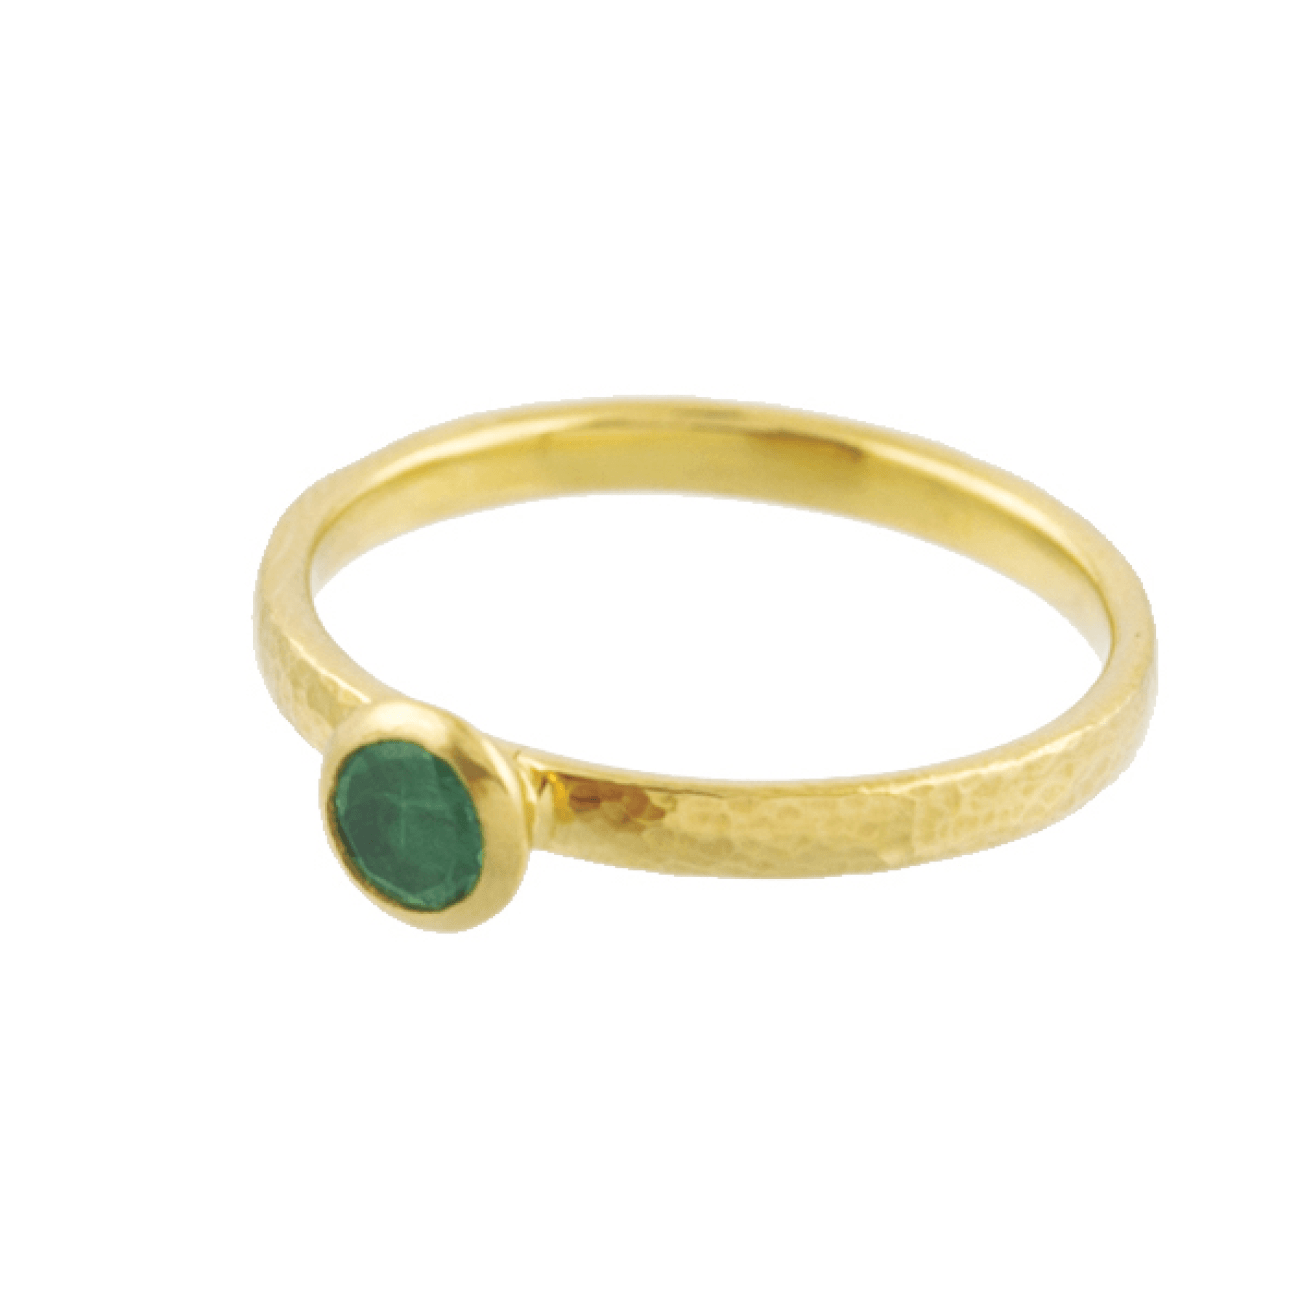 Gurhan Jewelry - Stackable ring with round emerald | Manfredi Jewels